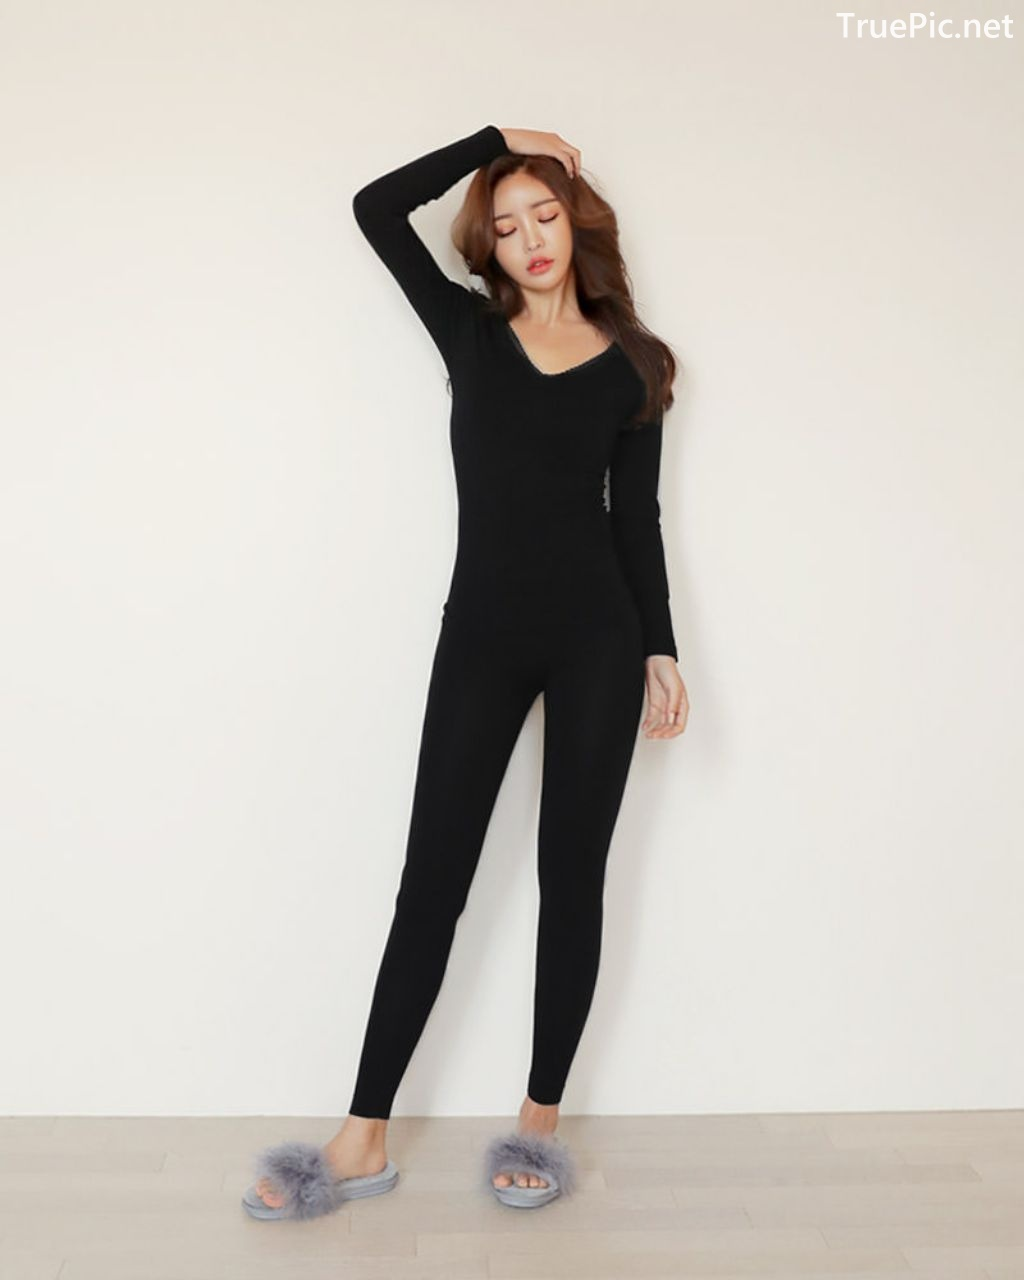 Image-Korean-Fashion-Model-Jin-Hee-Black-Tights-And-Winter-Sweater-Dress-TruePic.net- Picture-8